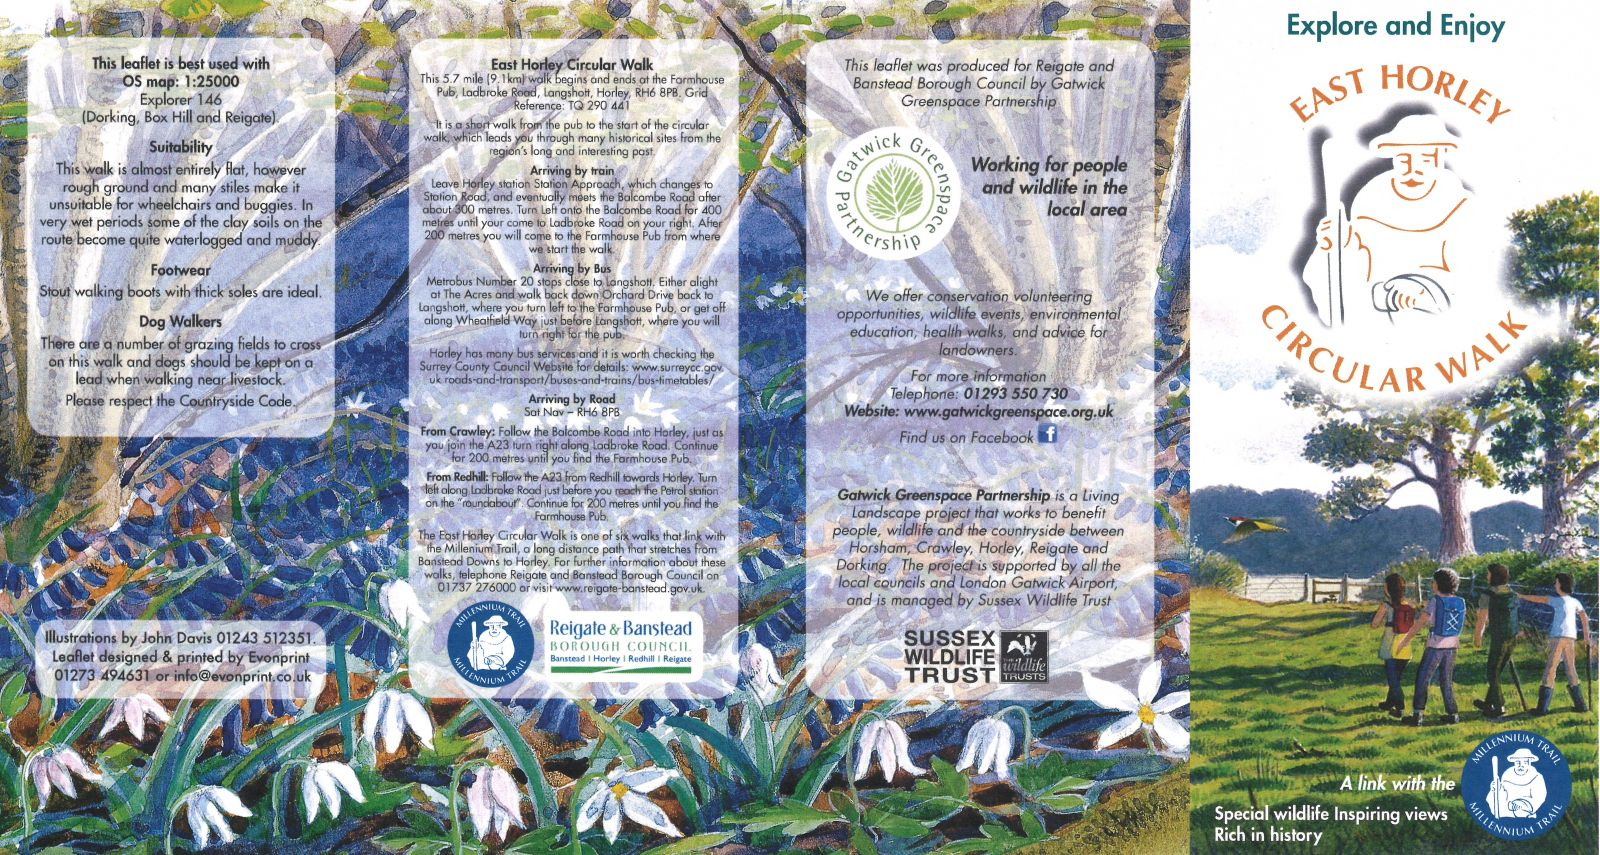 "This leaflet is best used with OS map: 1:25000 Explorer 146 (Dorking, Box Hill and Reigate). Suitability: This walk is almost entirely flat, however rough ground and many stiles make it unsuitable for wheelchairs and buggies. In very wet periods some of the clay soils on the route become quite waterlogged and muddy. Footwear: Stout walking boots with thick soles are ideal. Dog Walkers: There are a number of grazing fields to cross on this walk and dogs should be kept on a lead when walking near livestock. Please respect the Countryside Code. Illustrations by John Davis 01243 512351. Leaflet designed & printed by Evonprint 01273 494631 or info@evonprint.co.uk (9.1km) walk begins and ends at the Farmhouse Pub, Ladbroke Road, Langshott, Horley, RH6 8PB. Grid Reference: TQ 290 441 It is a short walk from the pub to the start of the circular walk, which leads you through many historical sites from the region's long and interesting past. Arriving by train: Leave Horley station Station Approach, which changes to Station Road, and eventually meets the Balcombe Road after about 300 metres. Turn Left onto the Balcombe Road for 400 metres until your come to Ladbroke Road on your right. After 200 metres you will come to the Farmhouse Pub from where we start the walk. Arriving by Bus: Metrobus Number 20 stops close to Langshott. Either alight at The Acres and walk back down Orchard Drive back to Langshott, where you turn left to the Farmhouse Pub, or get off along Wheatfield Way just before Langshott, where you will turn right for the pub. Horley has many bus services and it is worth checking the Surrey County Council Website for details: www.surreycc.gov.uk roads-and-transport/buses-and-trains/bus-timetables/ Arriving by Road: Sat Nav – RH6 8PB. From Crawley: Follow the Balcombe Road into Horley, just as you join the A23 turn right along Ladbroke Road. Continue for 200 metres until you find the Farmhouse Pub. From Redhill: Follow the A23 from Redhill towards Horley. Turn left along Ladbroke Road just before you reach the Petrol station on the ""roundabout"". Continue for 200 metres until you find the Farmhouse Pub. The East Horley Circular Walk is one of six walks that link with the Millenium Trail, a long distance path that stretches from Banstead Downs to Horley. For further information about these walks, telephone Reigate and Banstead Borough Council on 01737 276000 or visit www.reigate-banstead.gov.uk. This leaflet was produced for Reigate and Banstead Borough Council by Gatwick Greenspace Partnership. We offer conservation volunteering opportunities, wildlife events, environmental education, health walks, and advice for landowners. For more information Telephone: 01293 550 730 Website: www.gatwickgreenspace.org.uk Find us on Facebook Gatwick Greenspace Partnership is a Living Landscape project that works to benefit people, wildlife and the countryside between Horsham, Crawley, Horley, Reigate and Dorking. The project is supported by all the local councils and London Gatwick Airport, and is managed by Sussex Wildlife Trust"